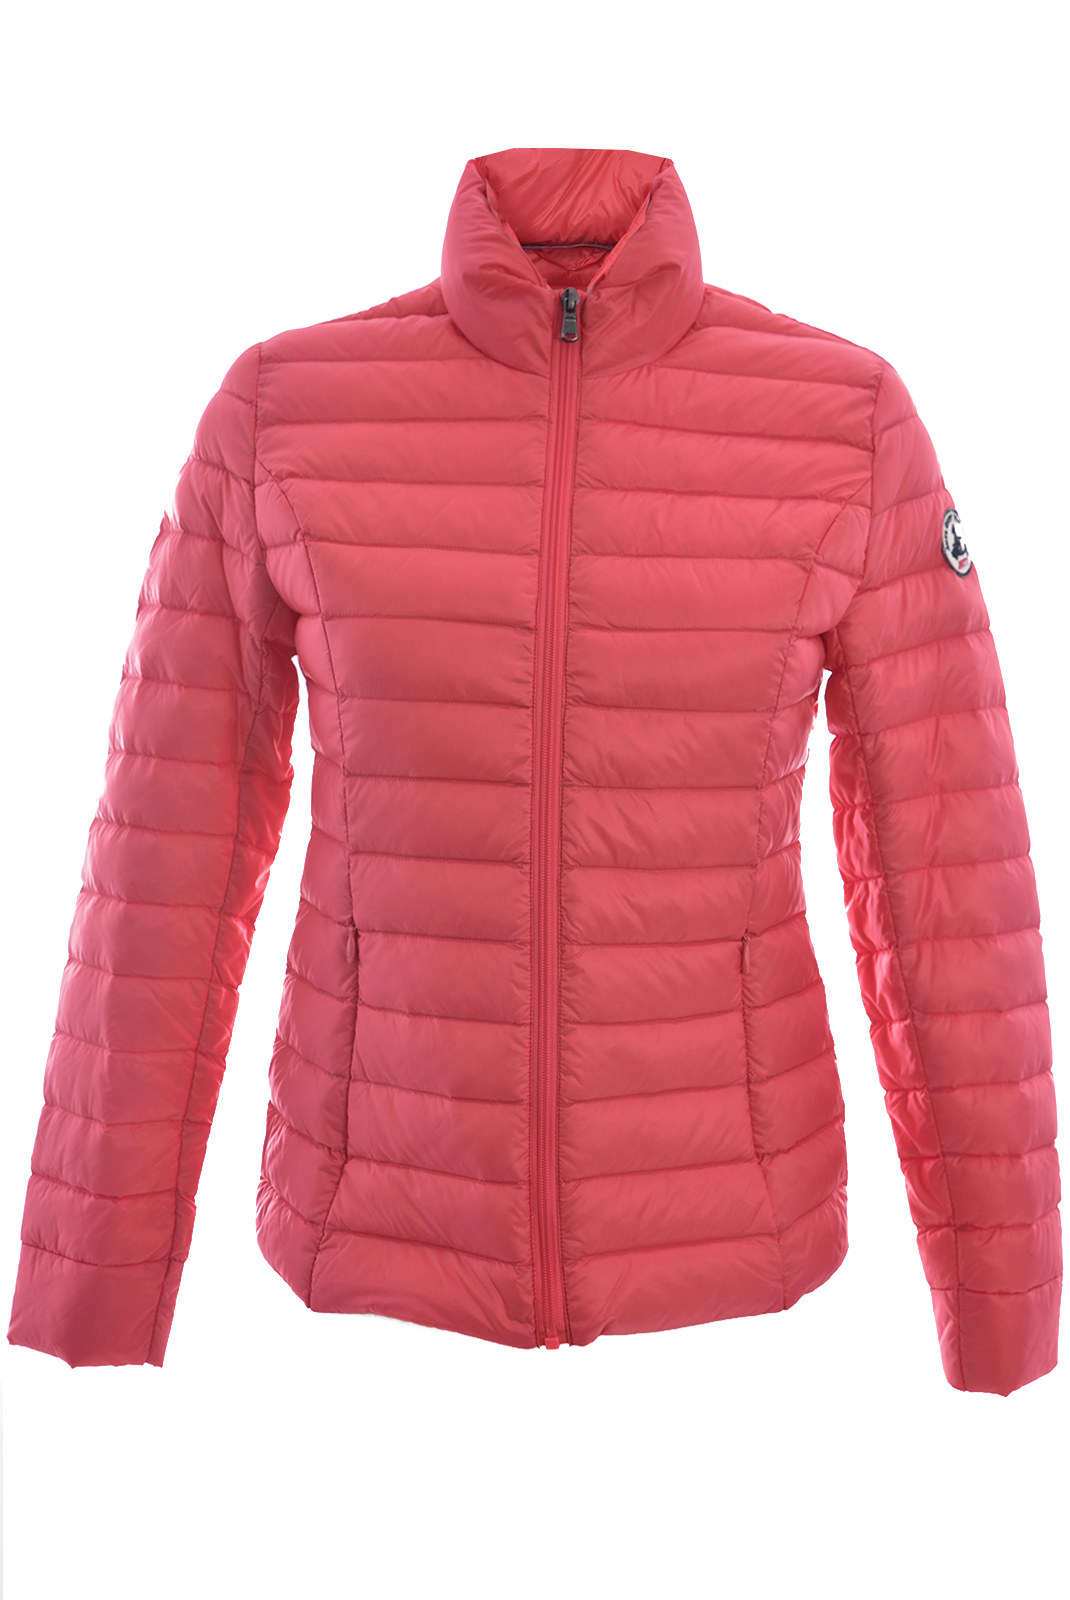 Blouson  Just over the top CHA 707 CORAIL